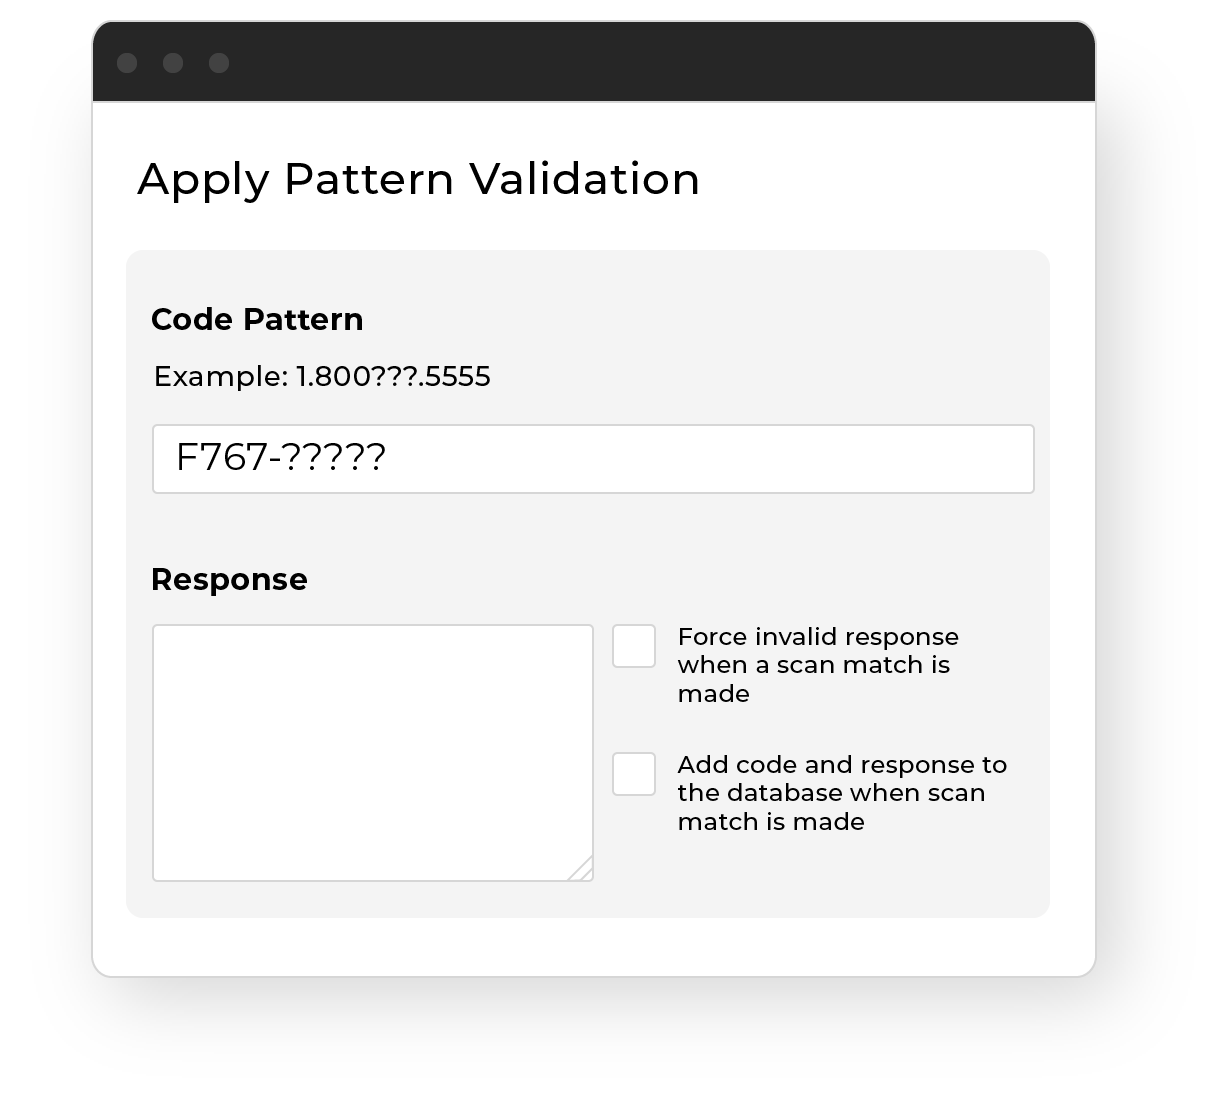 Apply Pattern Validation